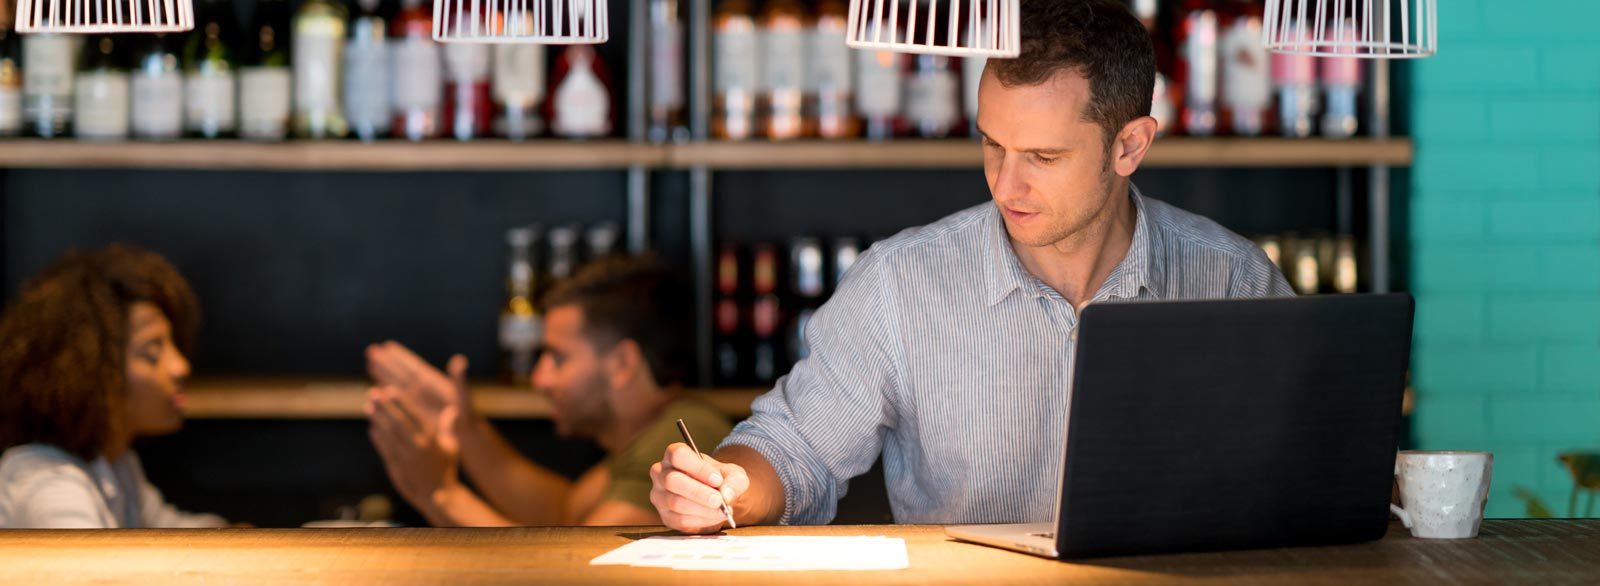 Bookkeeper does paperwork at restaurant